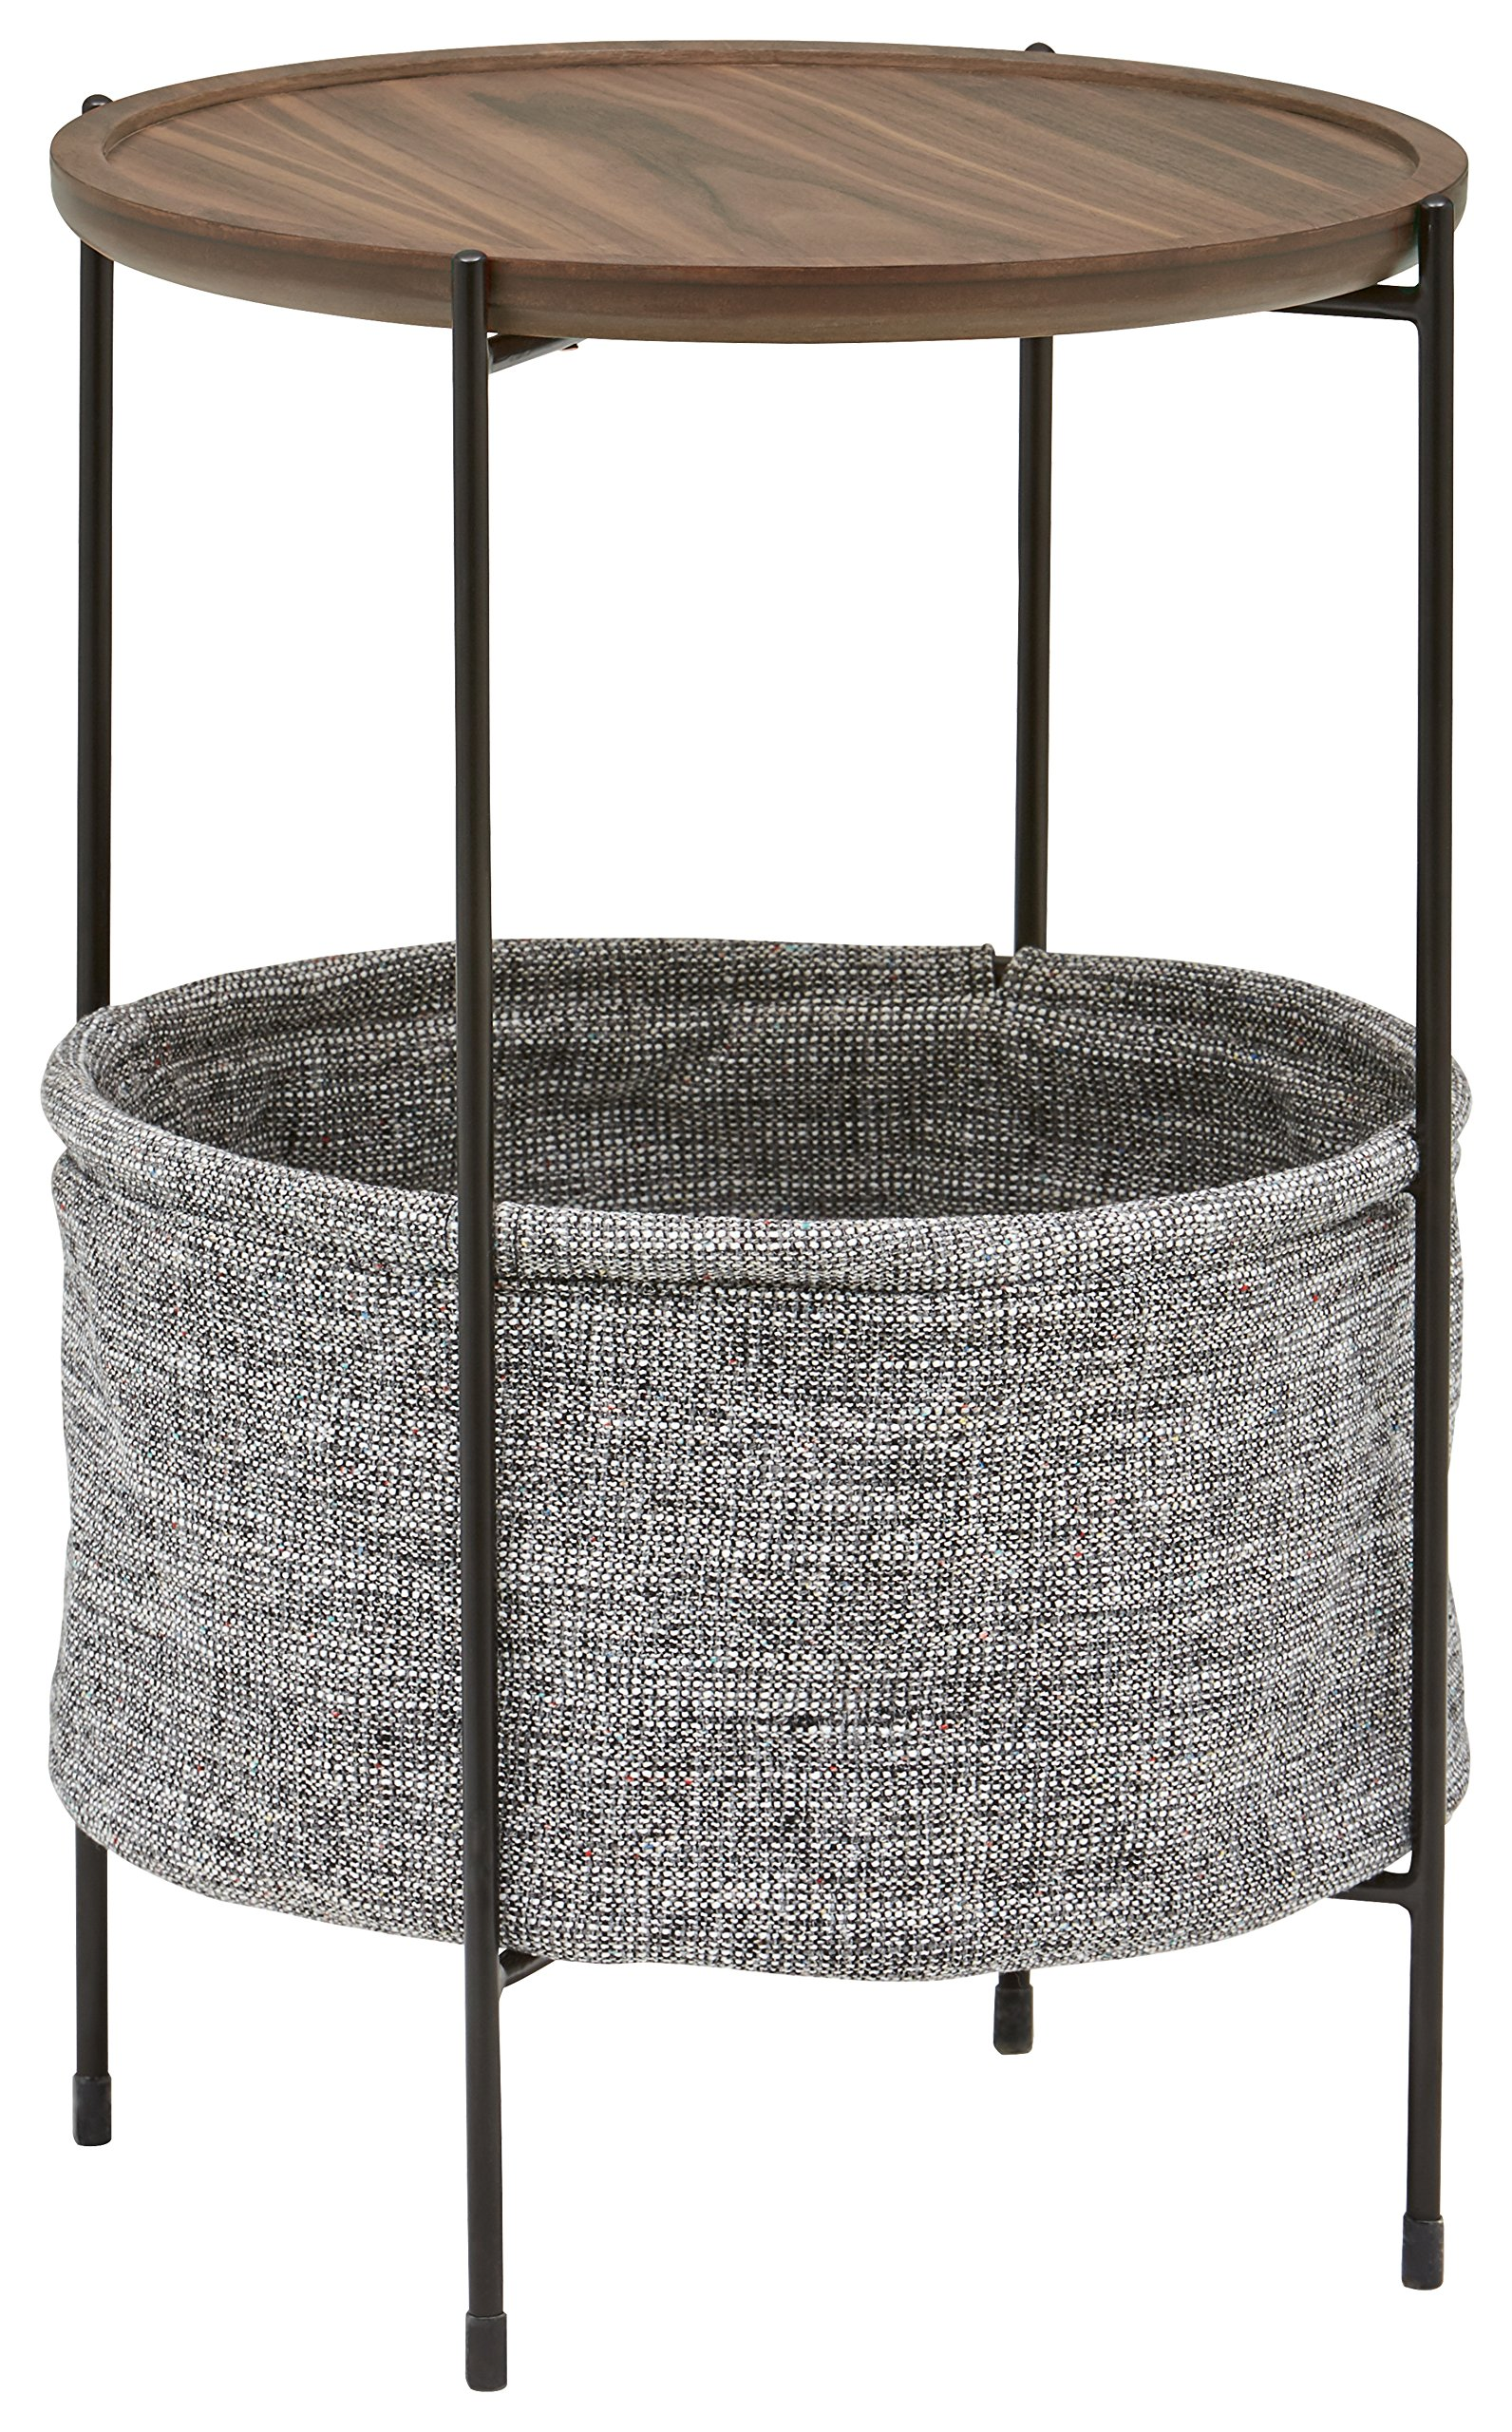 Rivet Round Storage Basket Side Table - Meeks, Walnut and Grey Fabric by Rivet